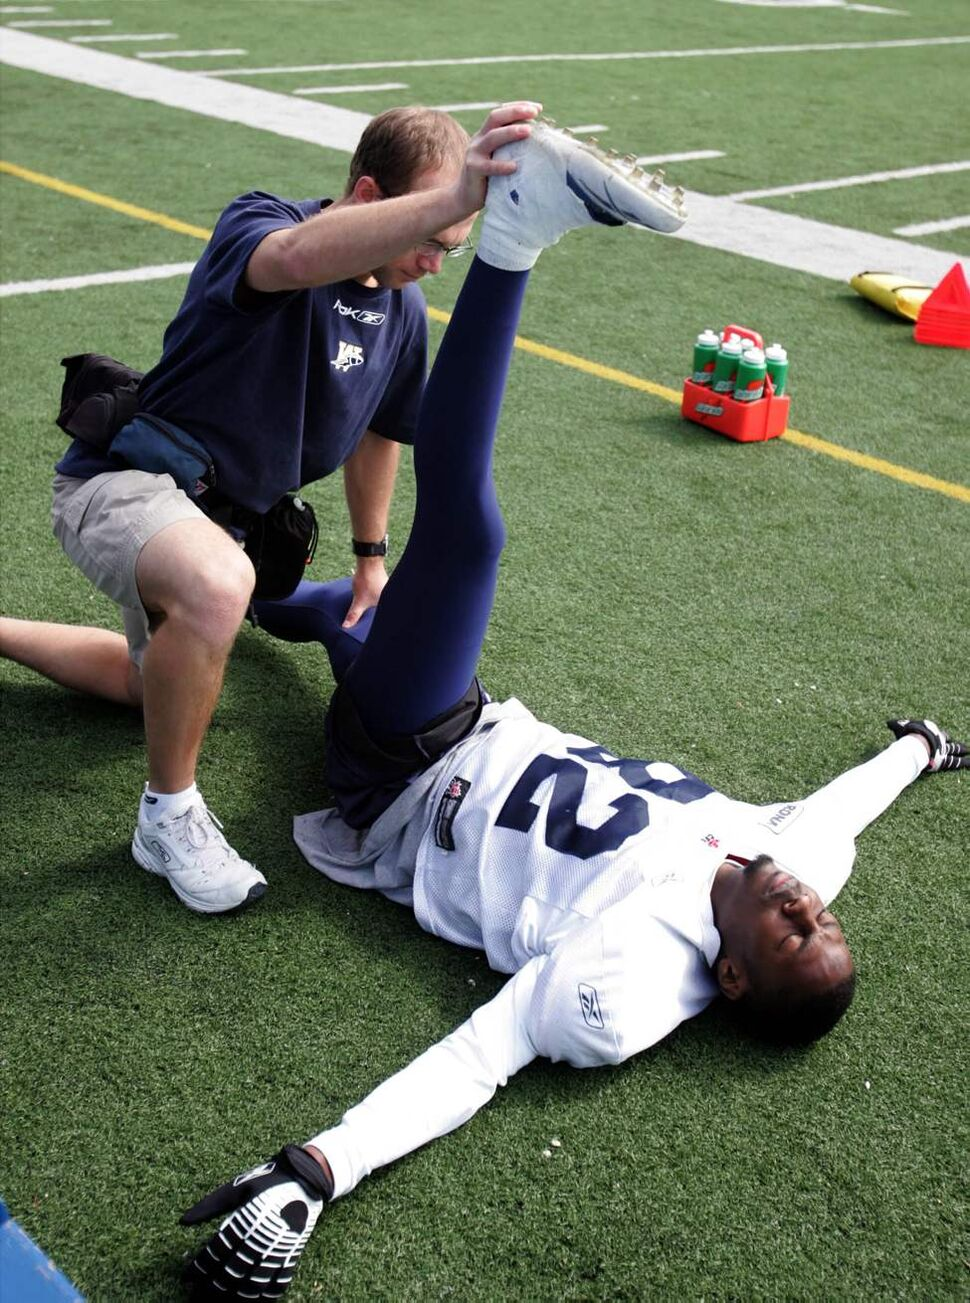 # 82 Terrence Edwards is stretched out during  camp. June 5 2007 (WAYNE GLOWACKI/WINNIPEG FREE PRESS)